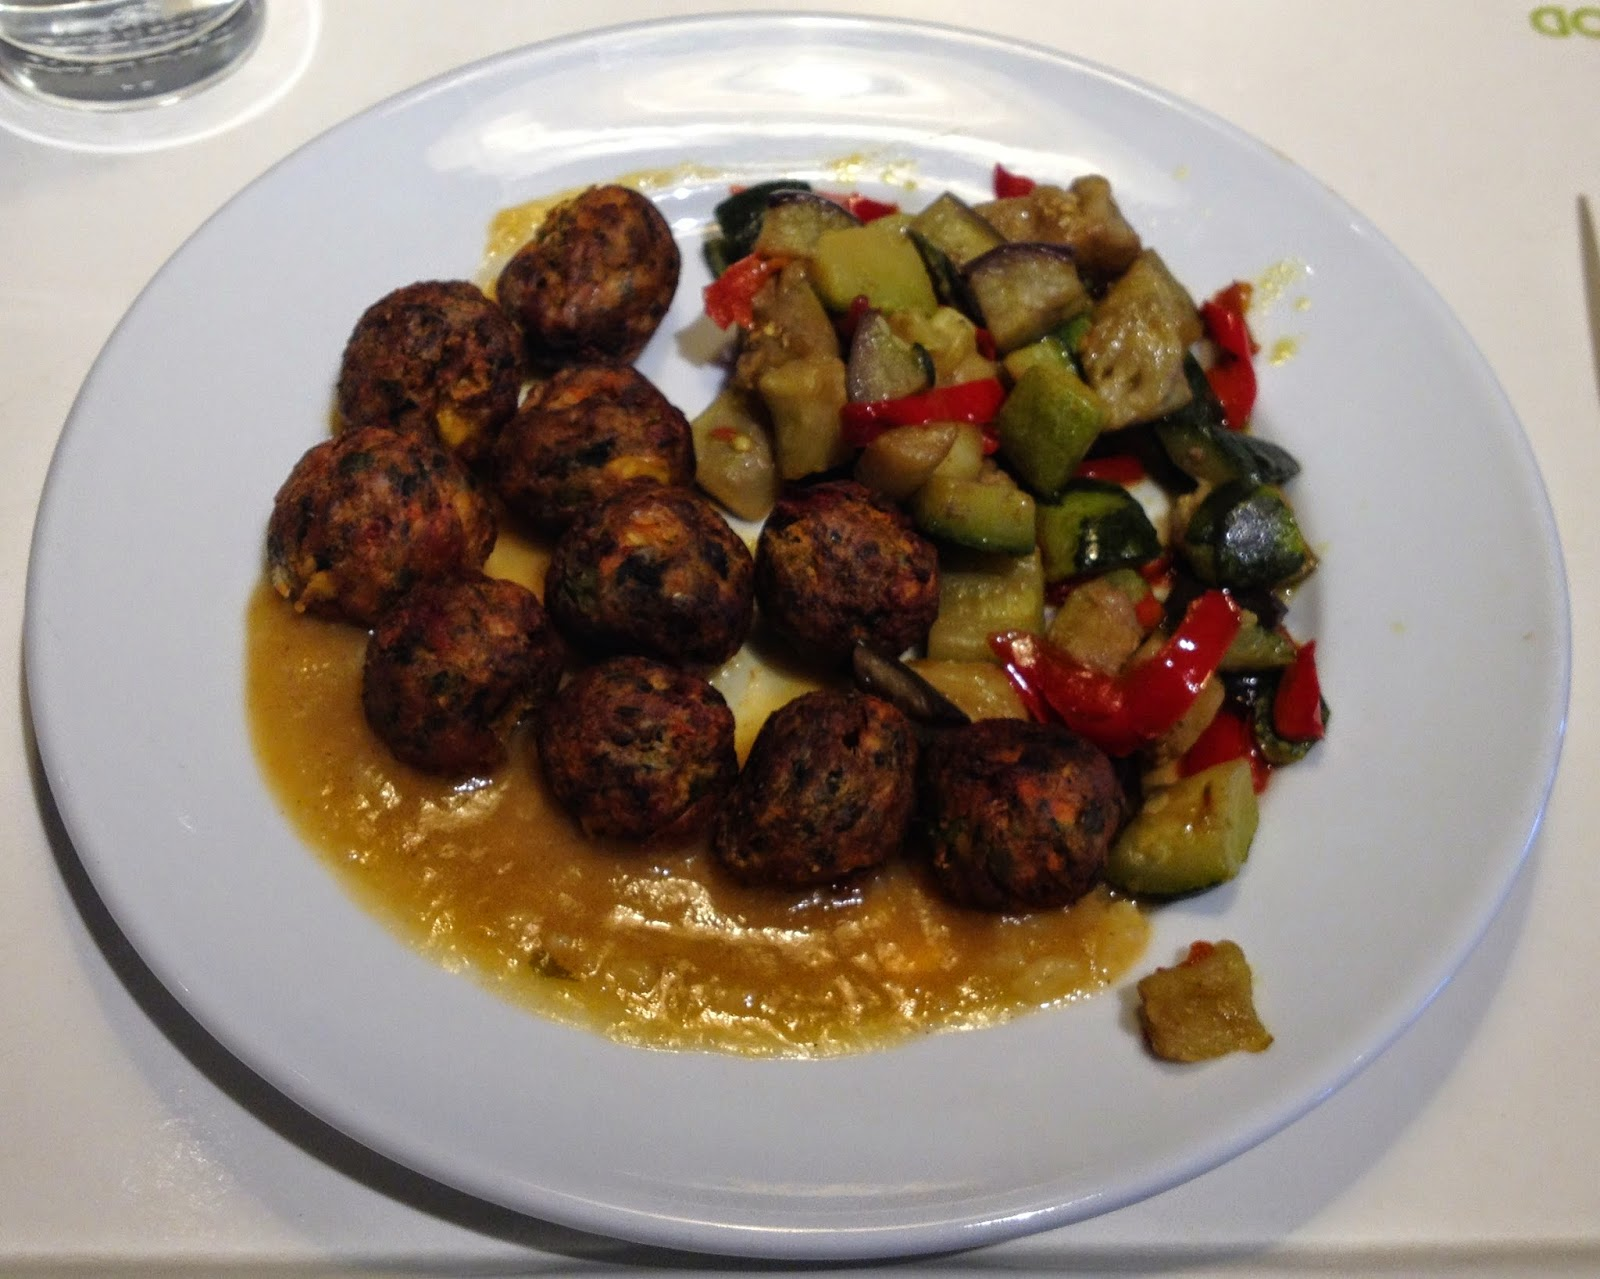 Sacramento vegan ikea for Ikea vegetable balls